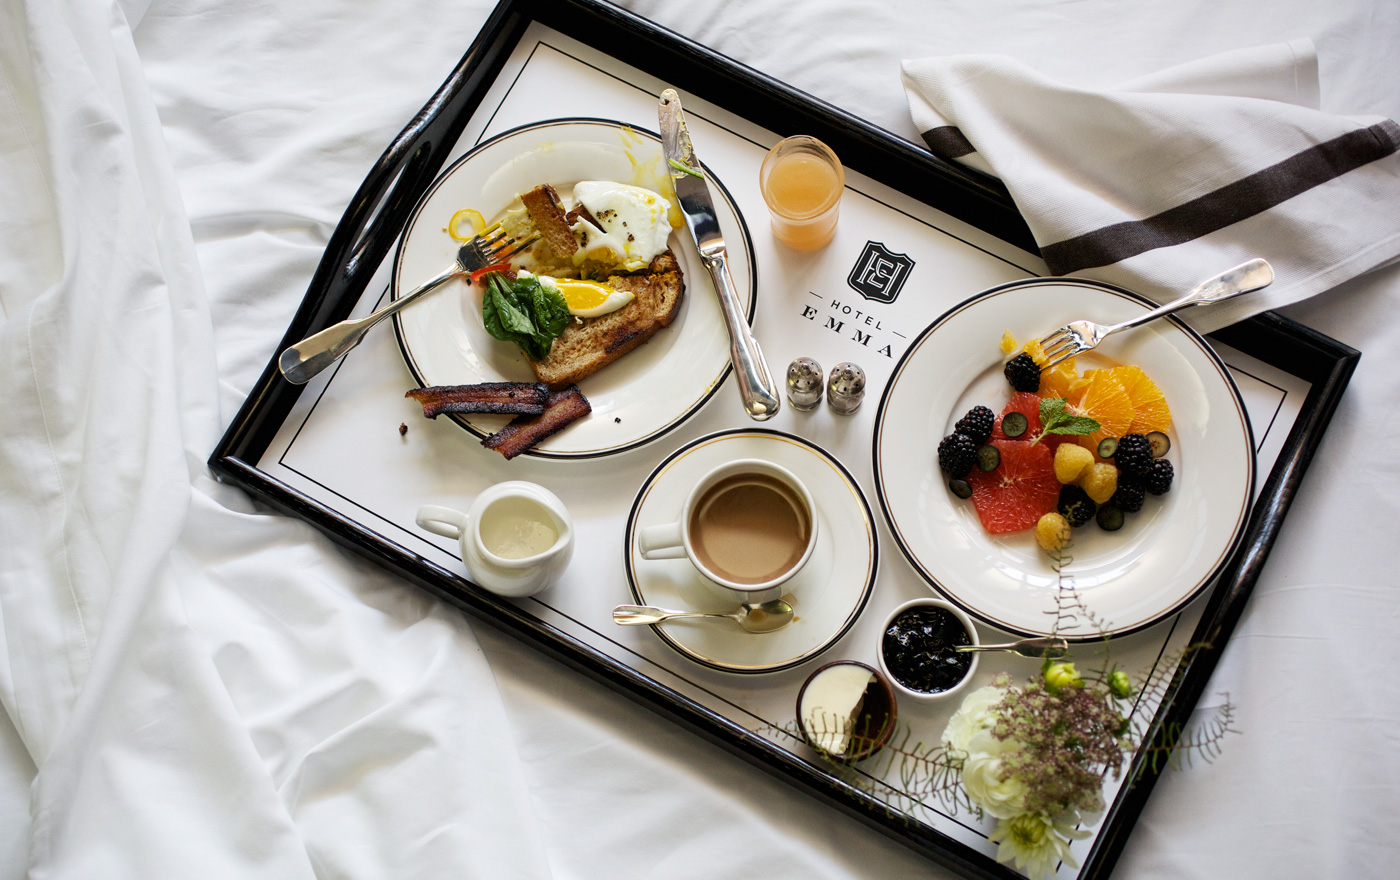 Picture of breakfast in bed.